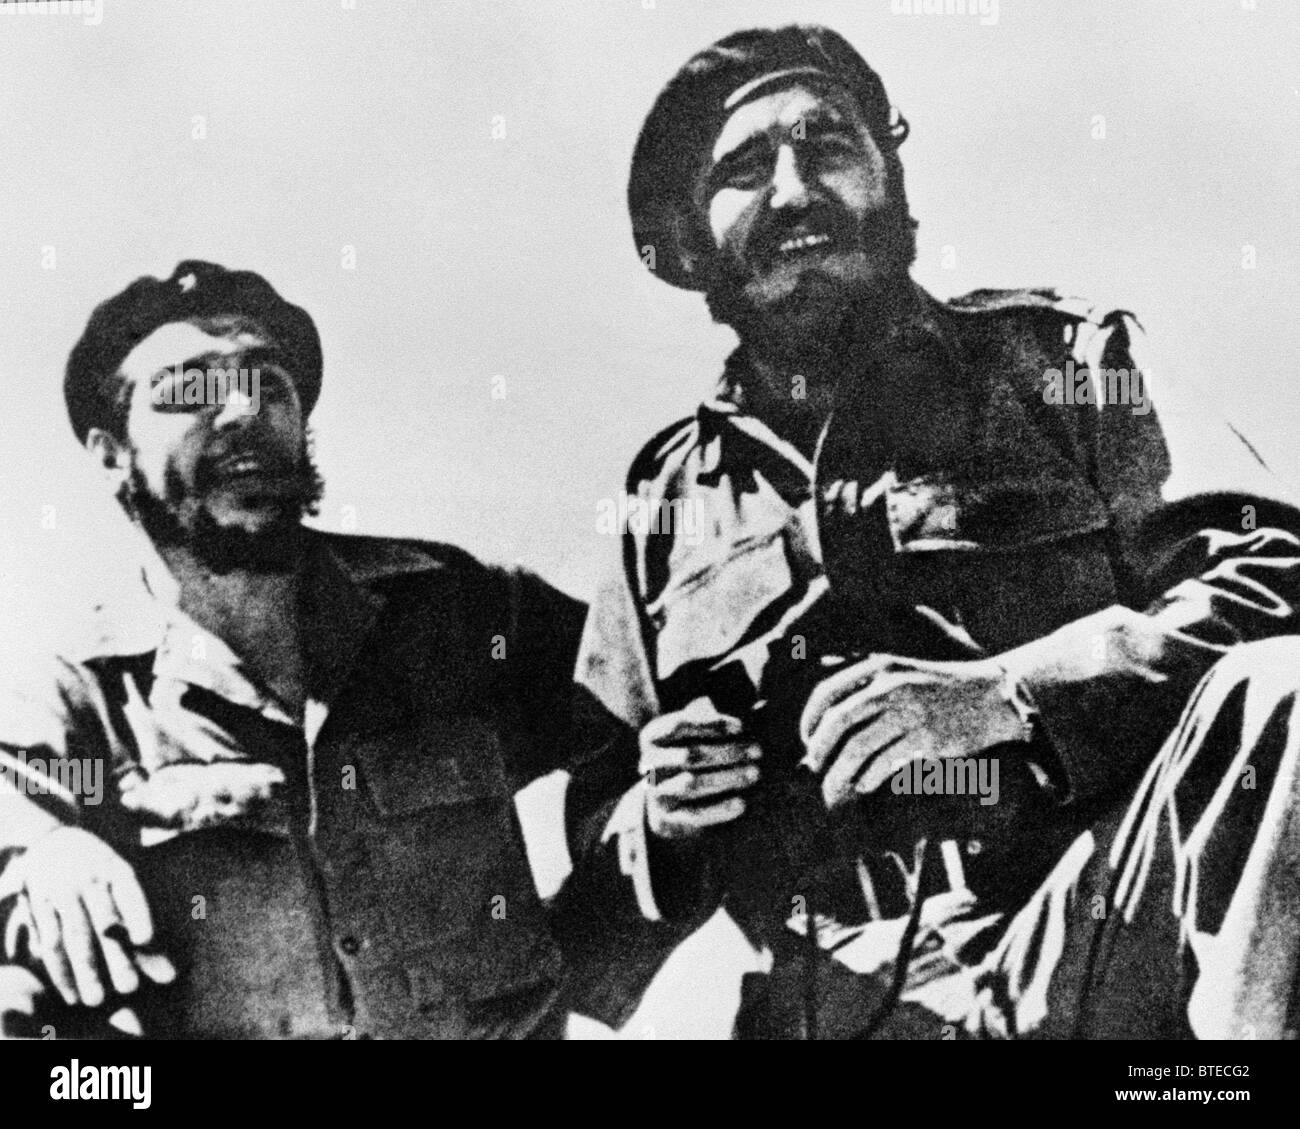 Fidel Castro and Che Guevara - Stock Image